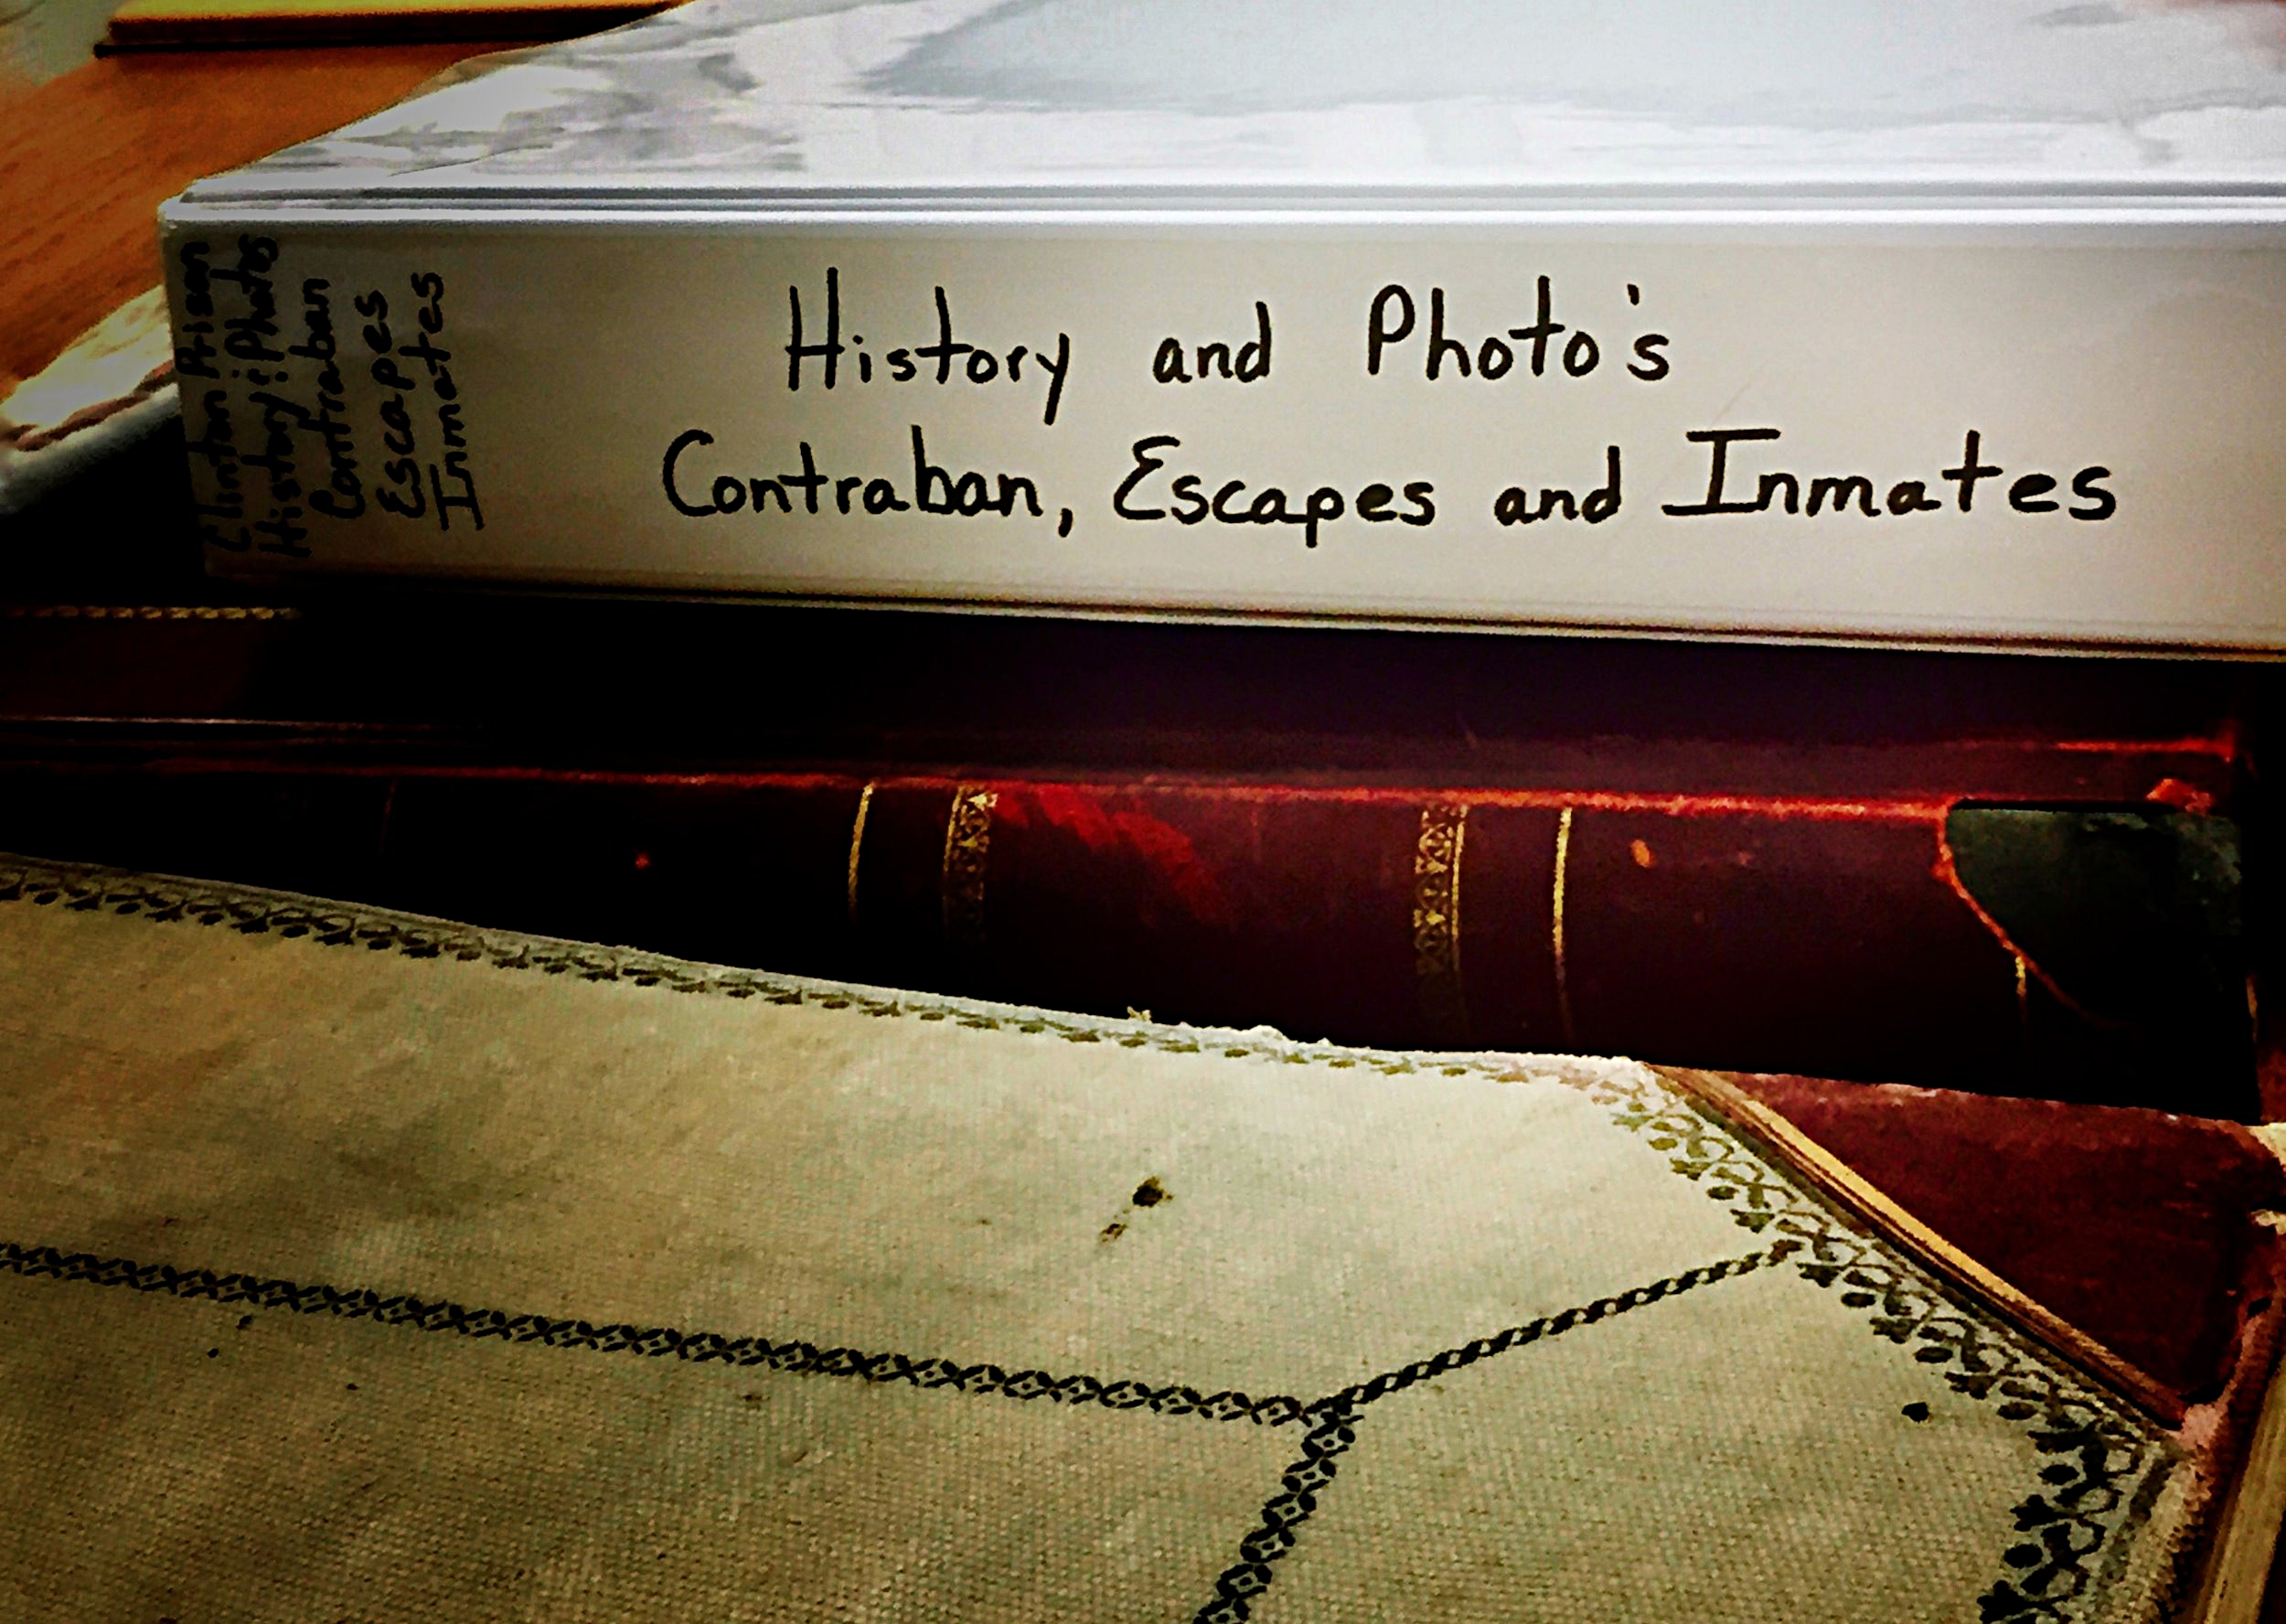 """A collection of documents on Clinton Prison escapes from the early 20th century, curated by historian Walter """"Pete"""" Light for the Museum at the Dannemora Free Library. (Chelsia Rose Marcius/August 14, 2016)"""